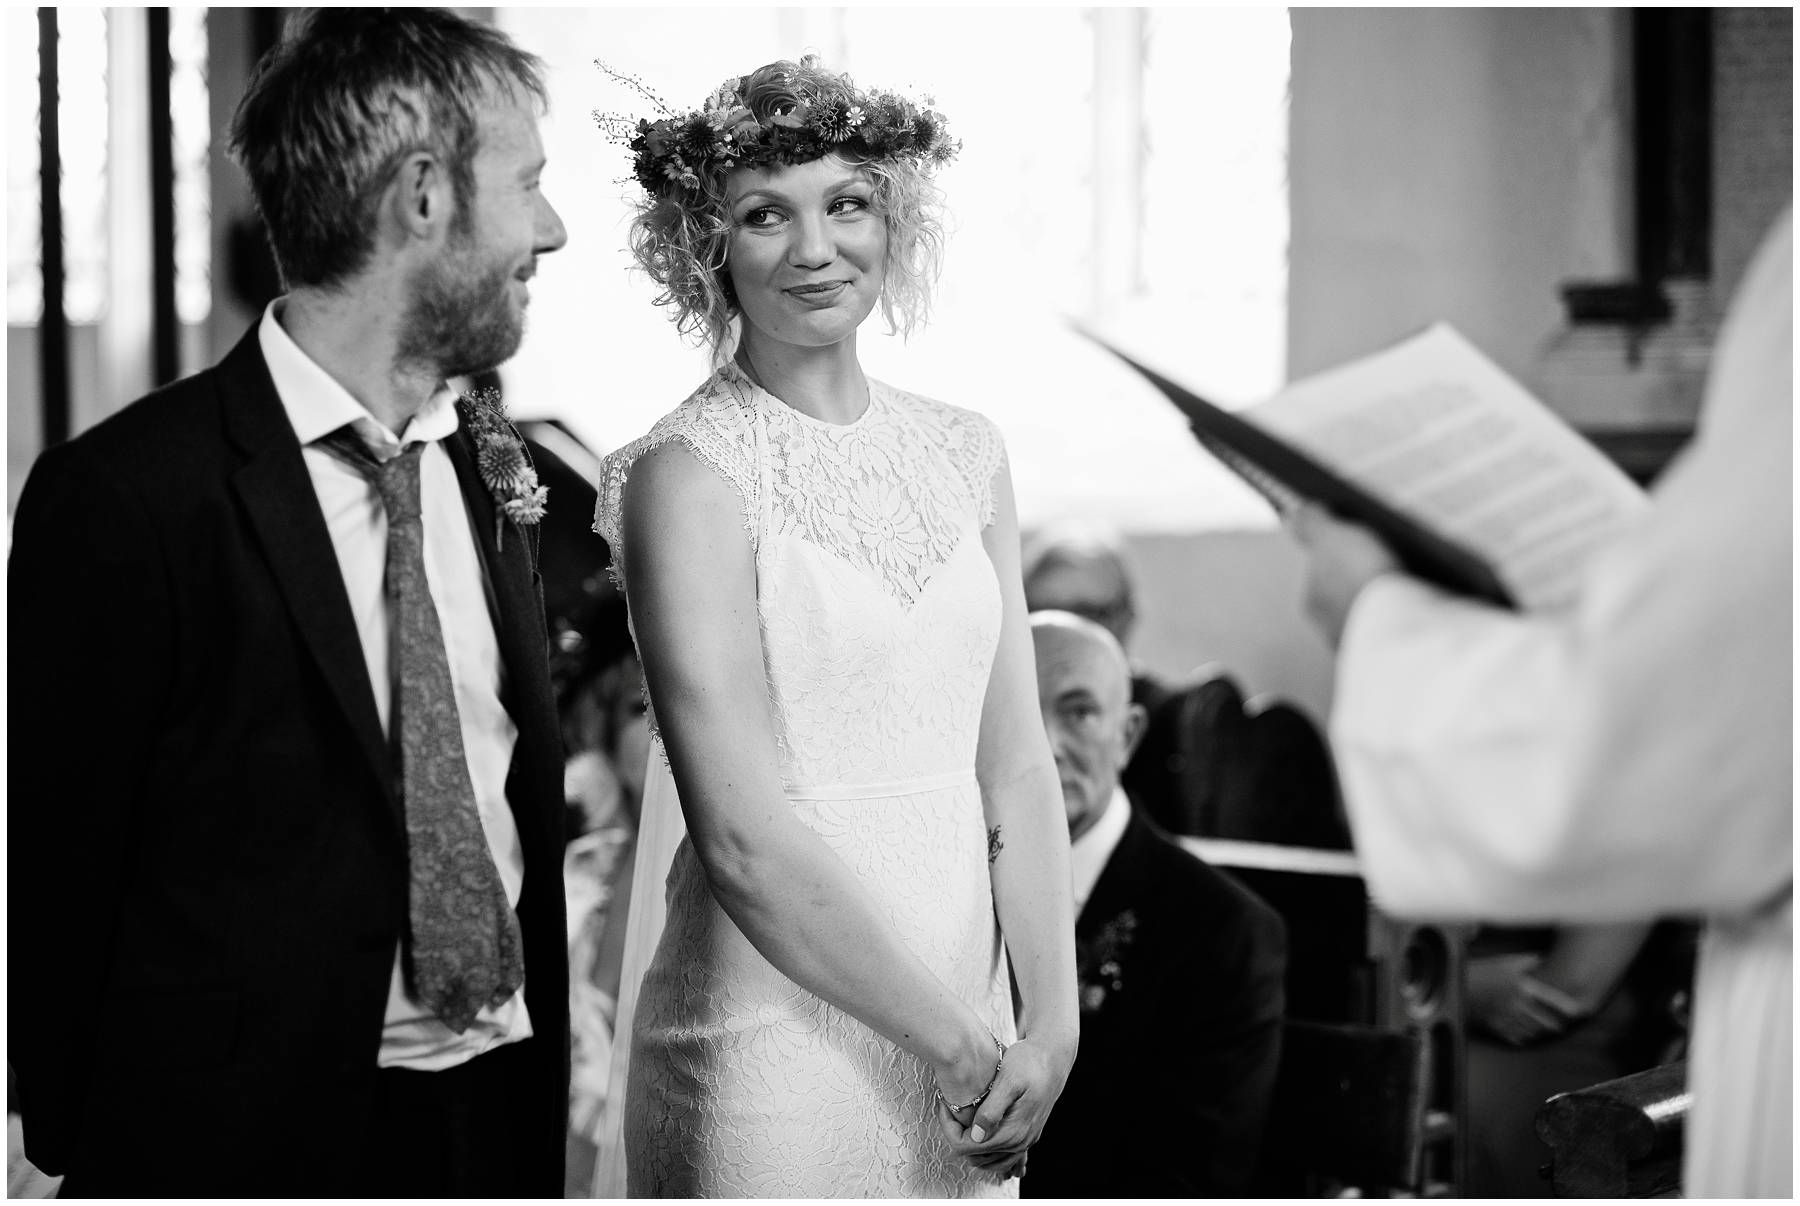 Bride and Groom at Essex church wedding